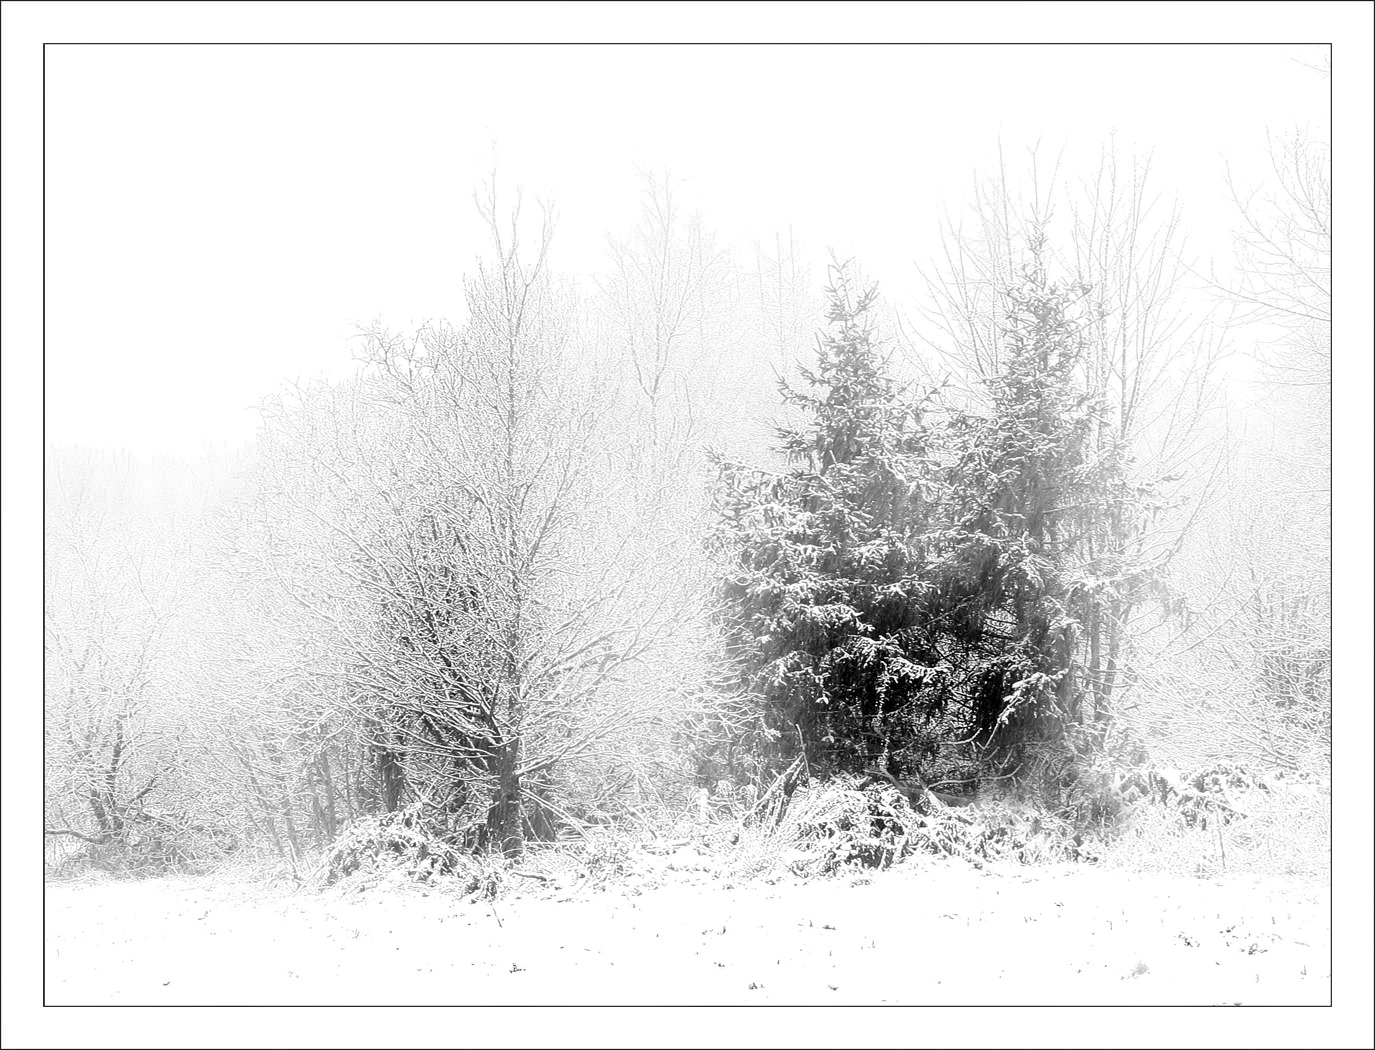 Mono Print - 1st Place: Trees in Snow by Ross Will